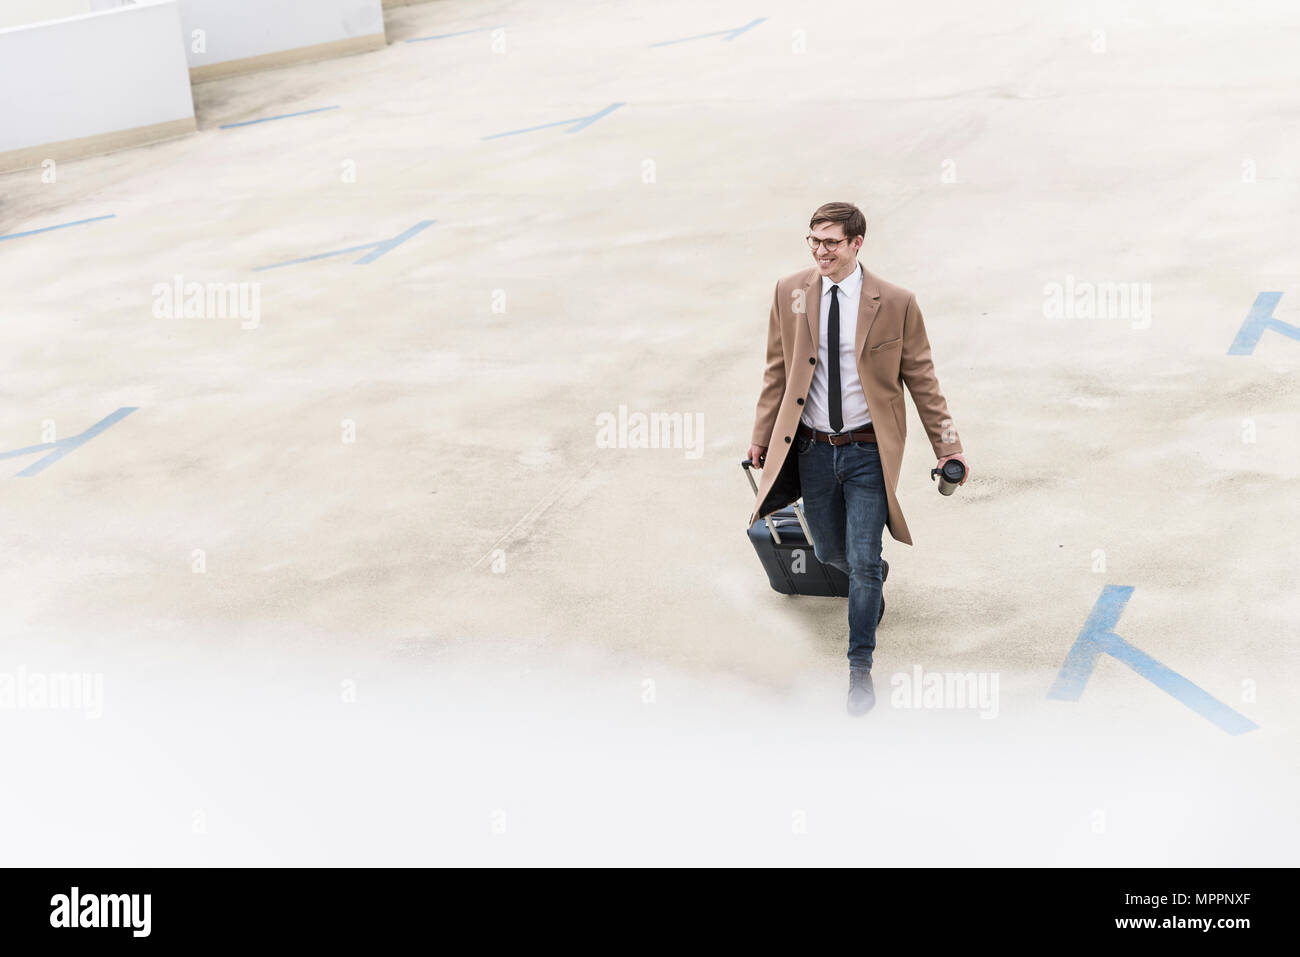 Smiling businessman with rolling suitcase walking at parking garage - Stock Image